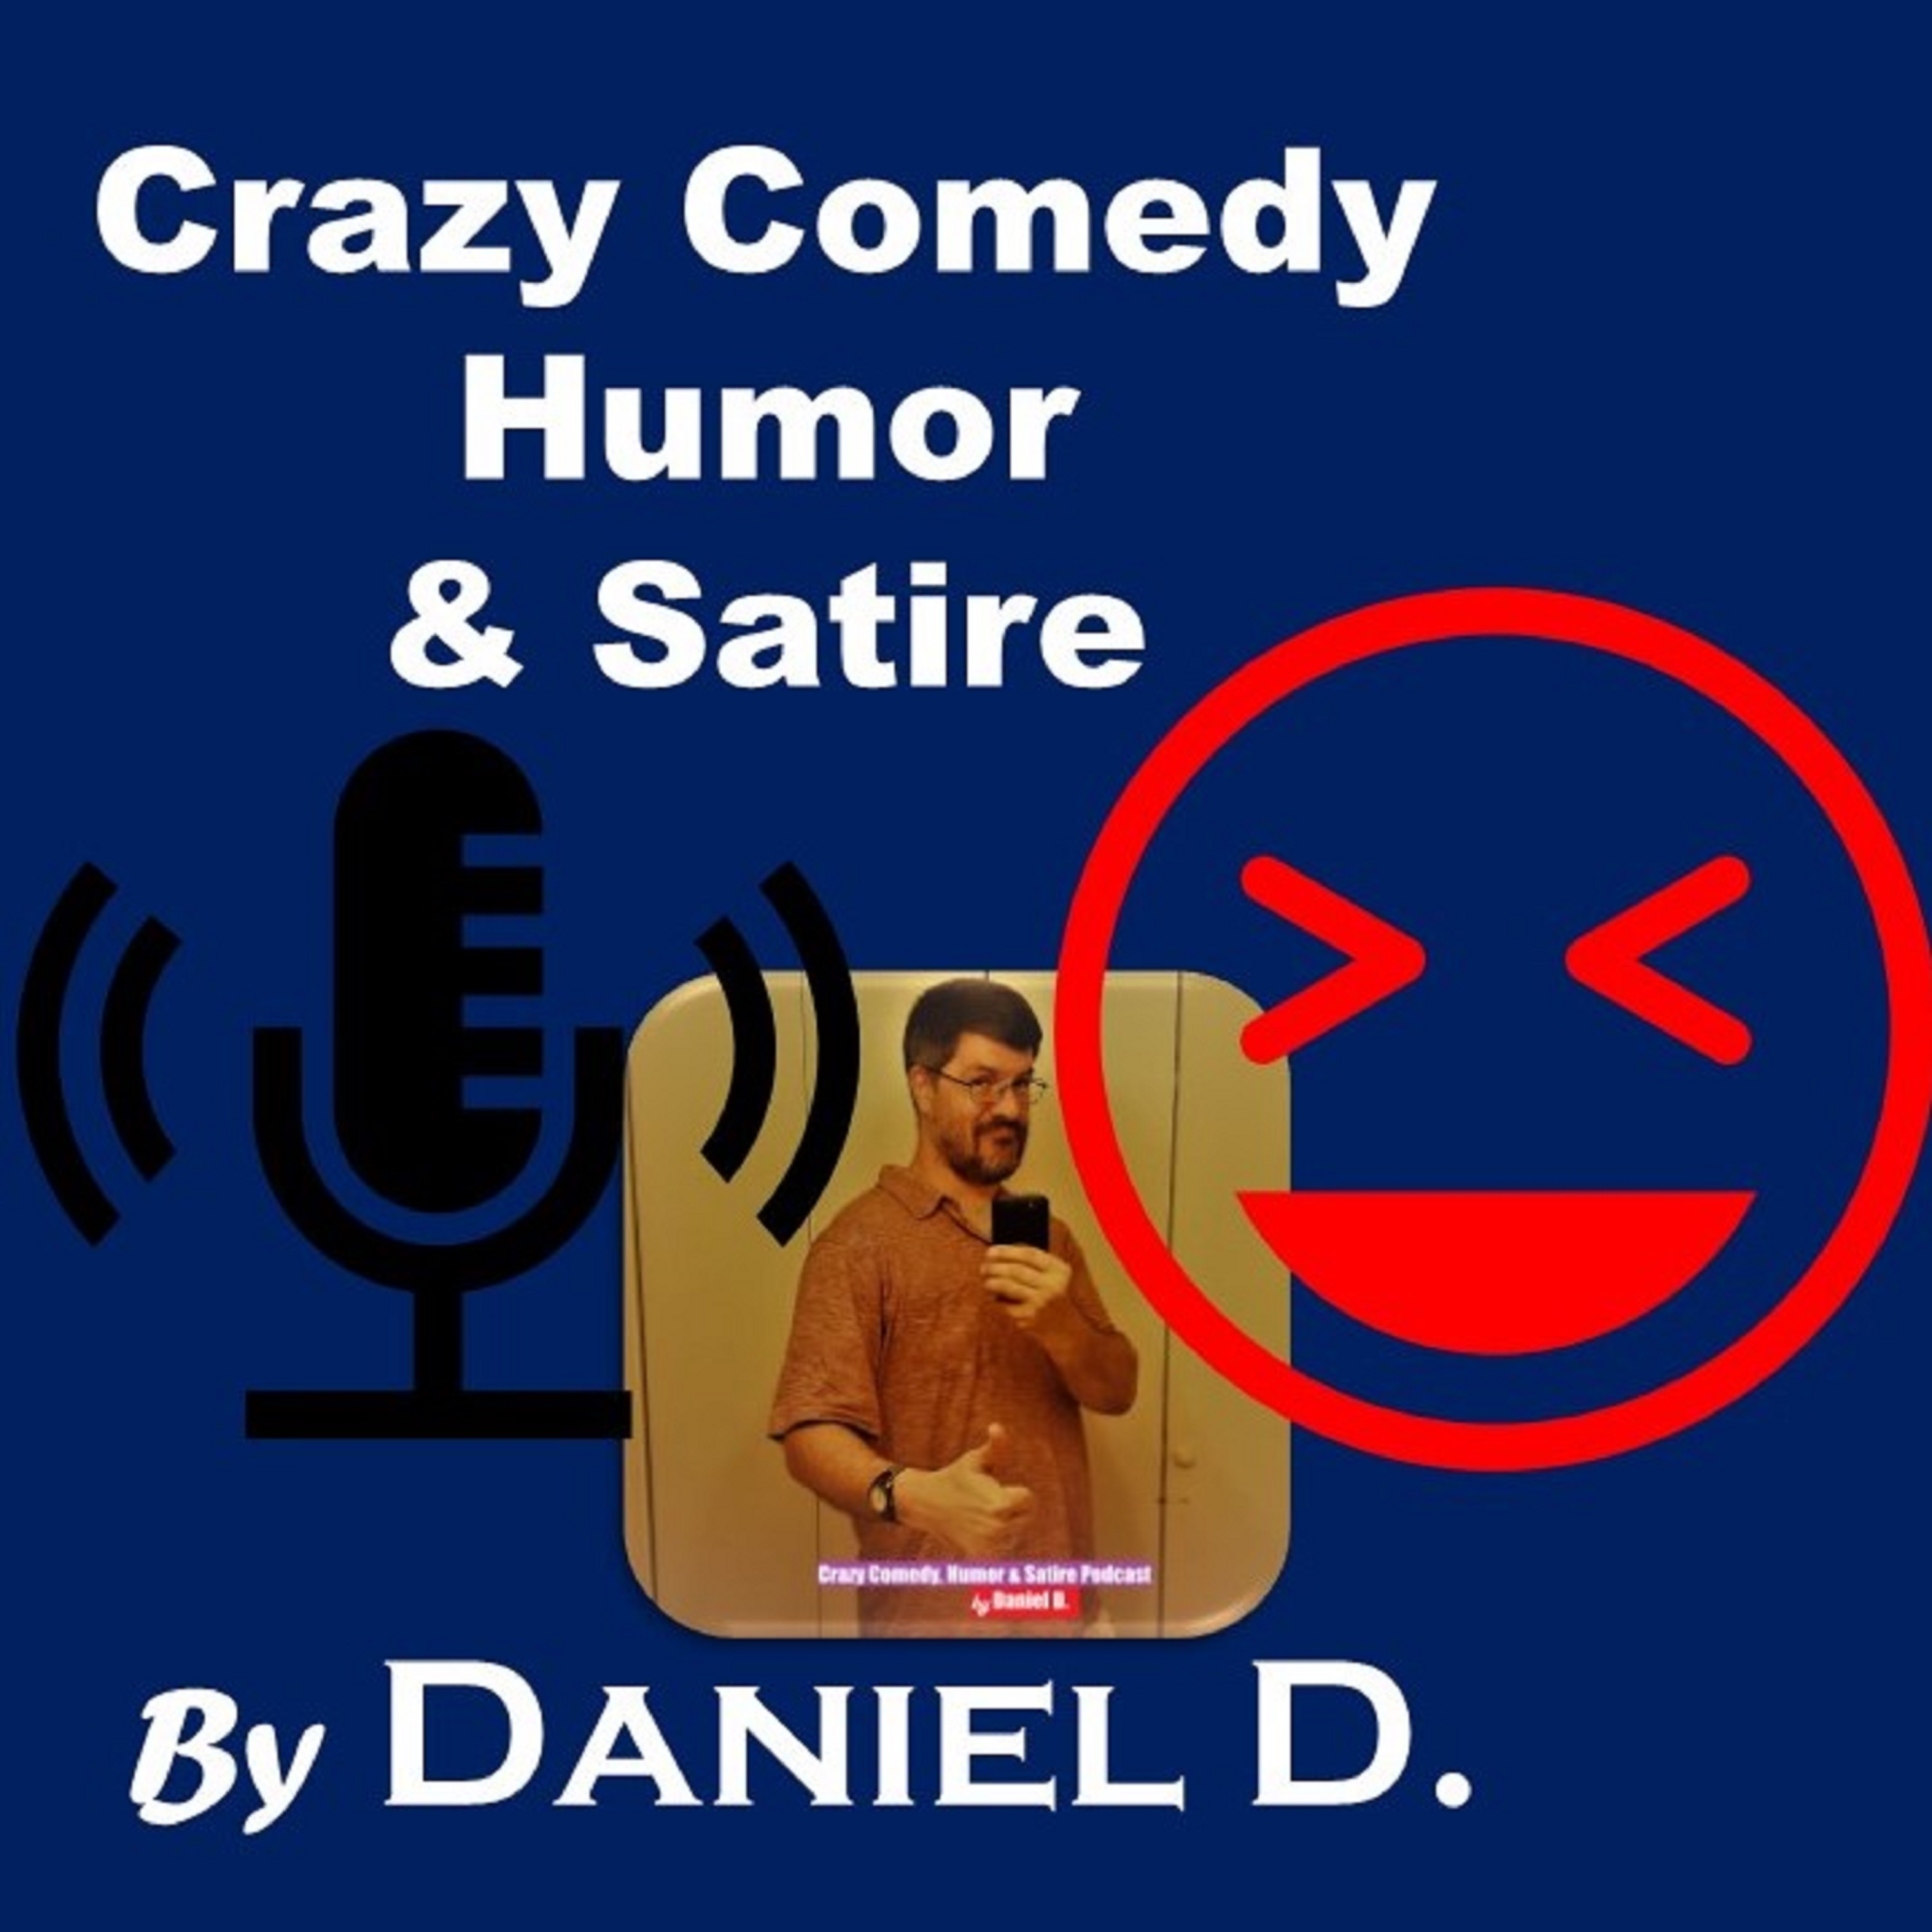 Artwork for Episode 33 of The Crazy Comedy, Humor & Satire Podcast